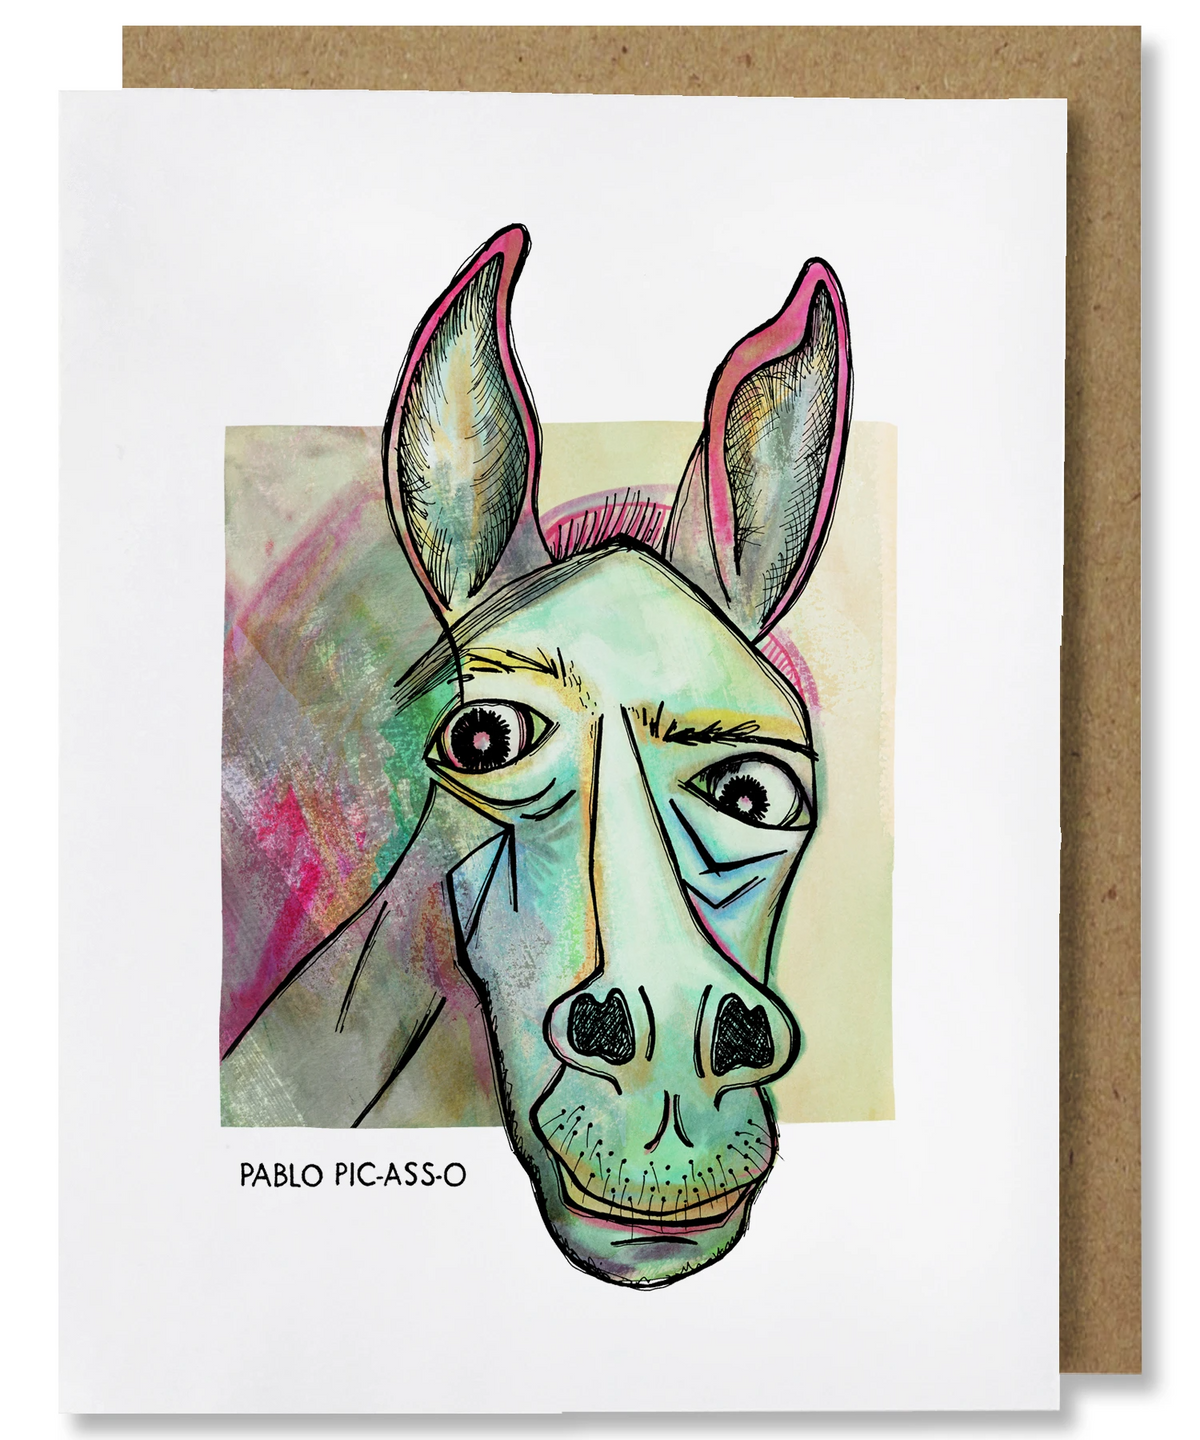 Pablo Picasso Greeting Card - Heart of the Home PA